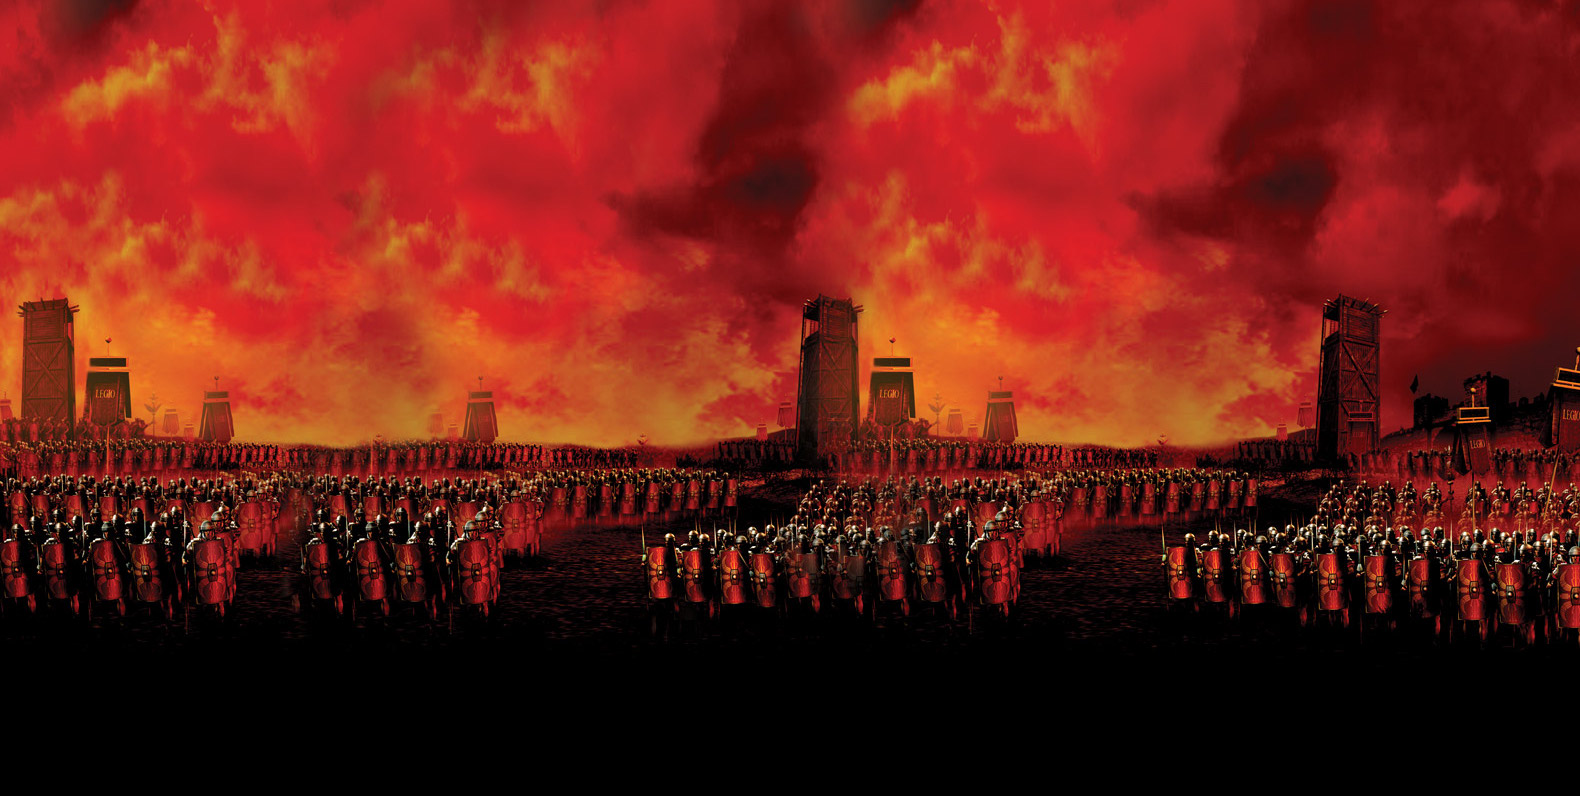 Rome total War teaser 002